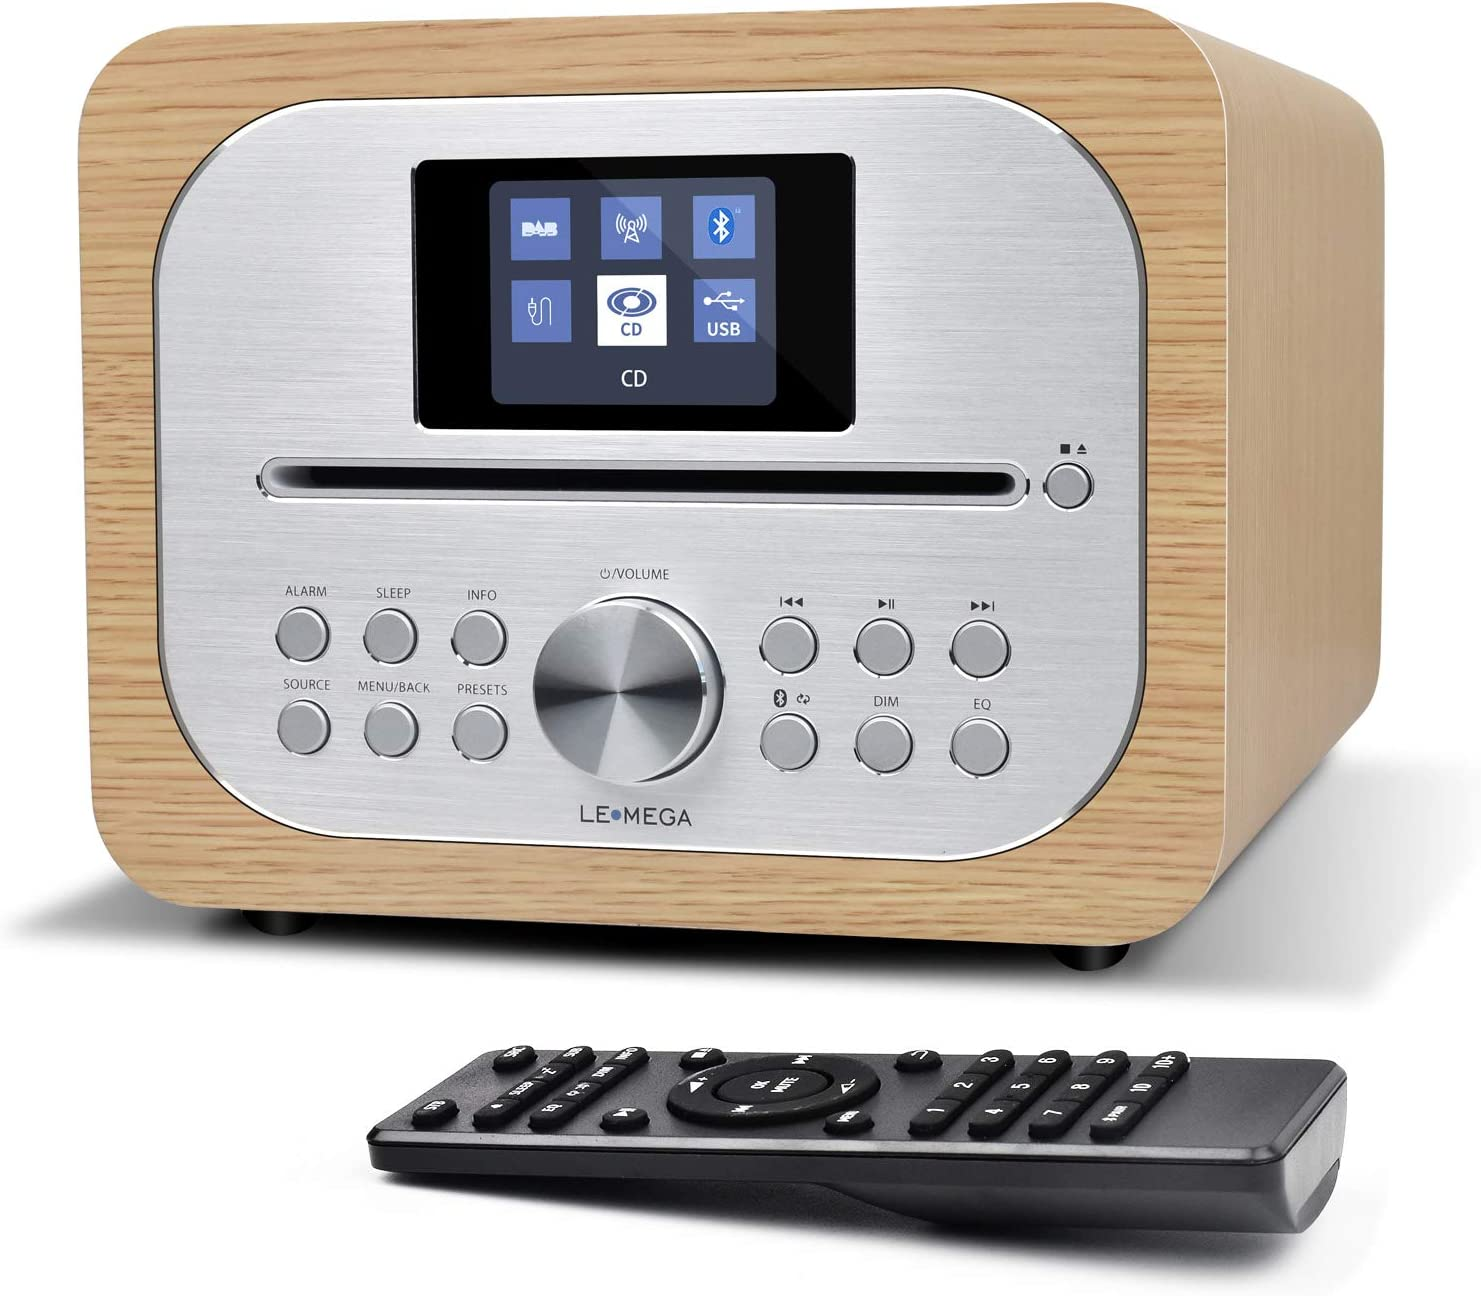 LEMEGA MSY2 All-in-One Music System with CD Player,FM Radio, Wireless Bluetooth,Wooden Box,Headphone-Out, USB Charging,USB MP3,Clock&Alarms, Colour Display, Remote Control –White Oak